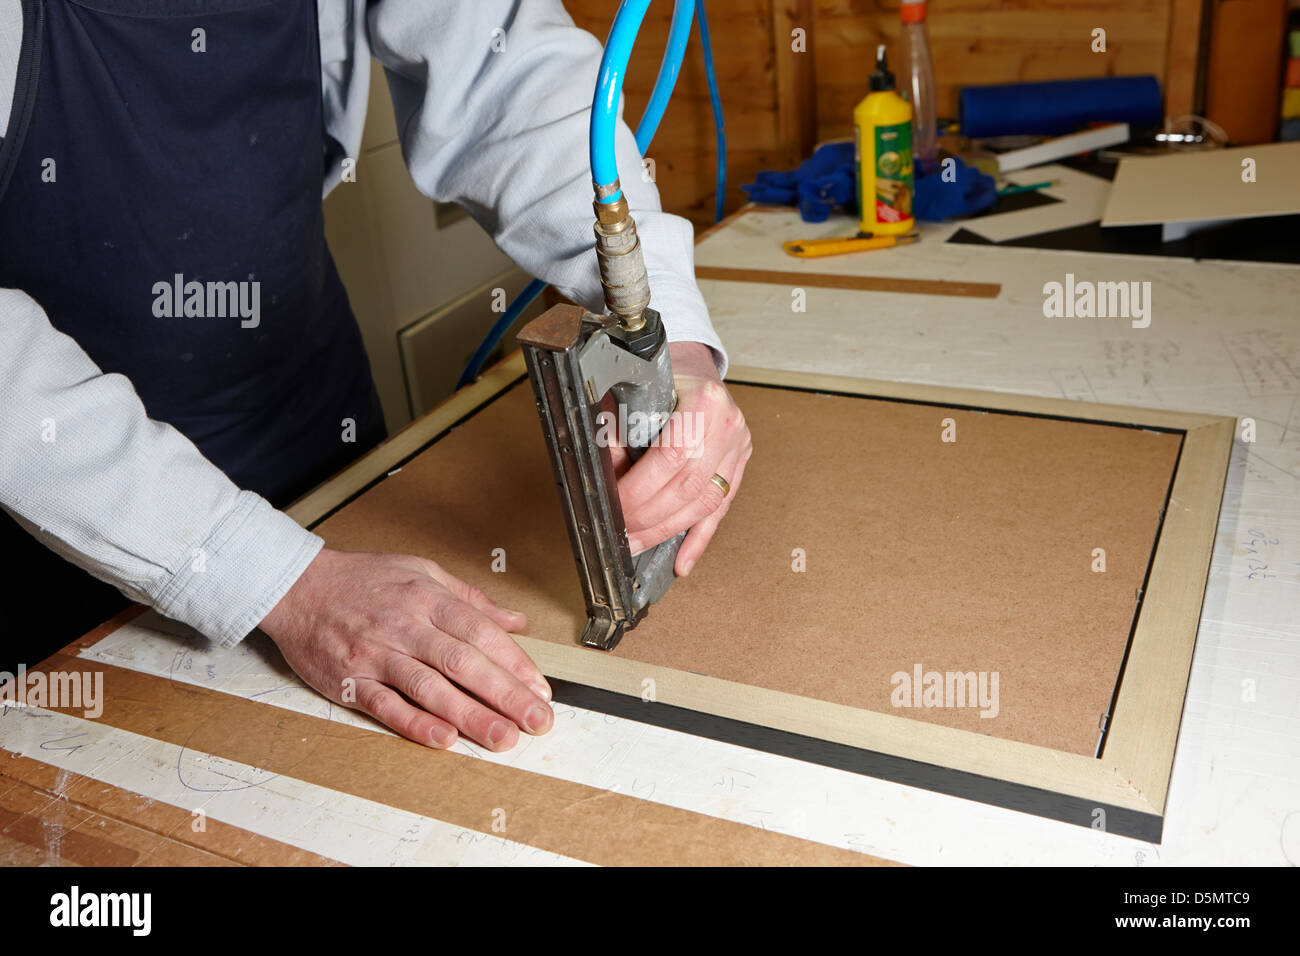 Nailing Frame Stockfotos & Nailing Frame Bilder - Alamy